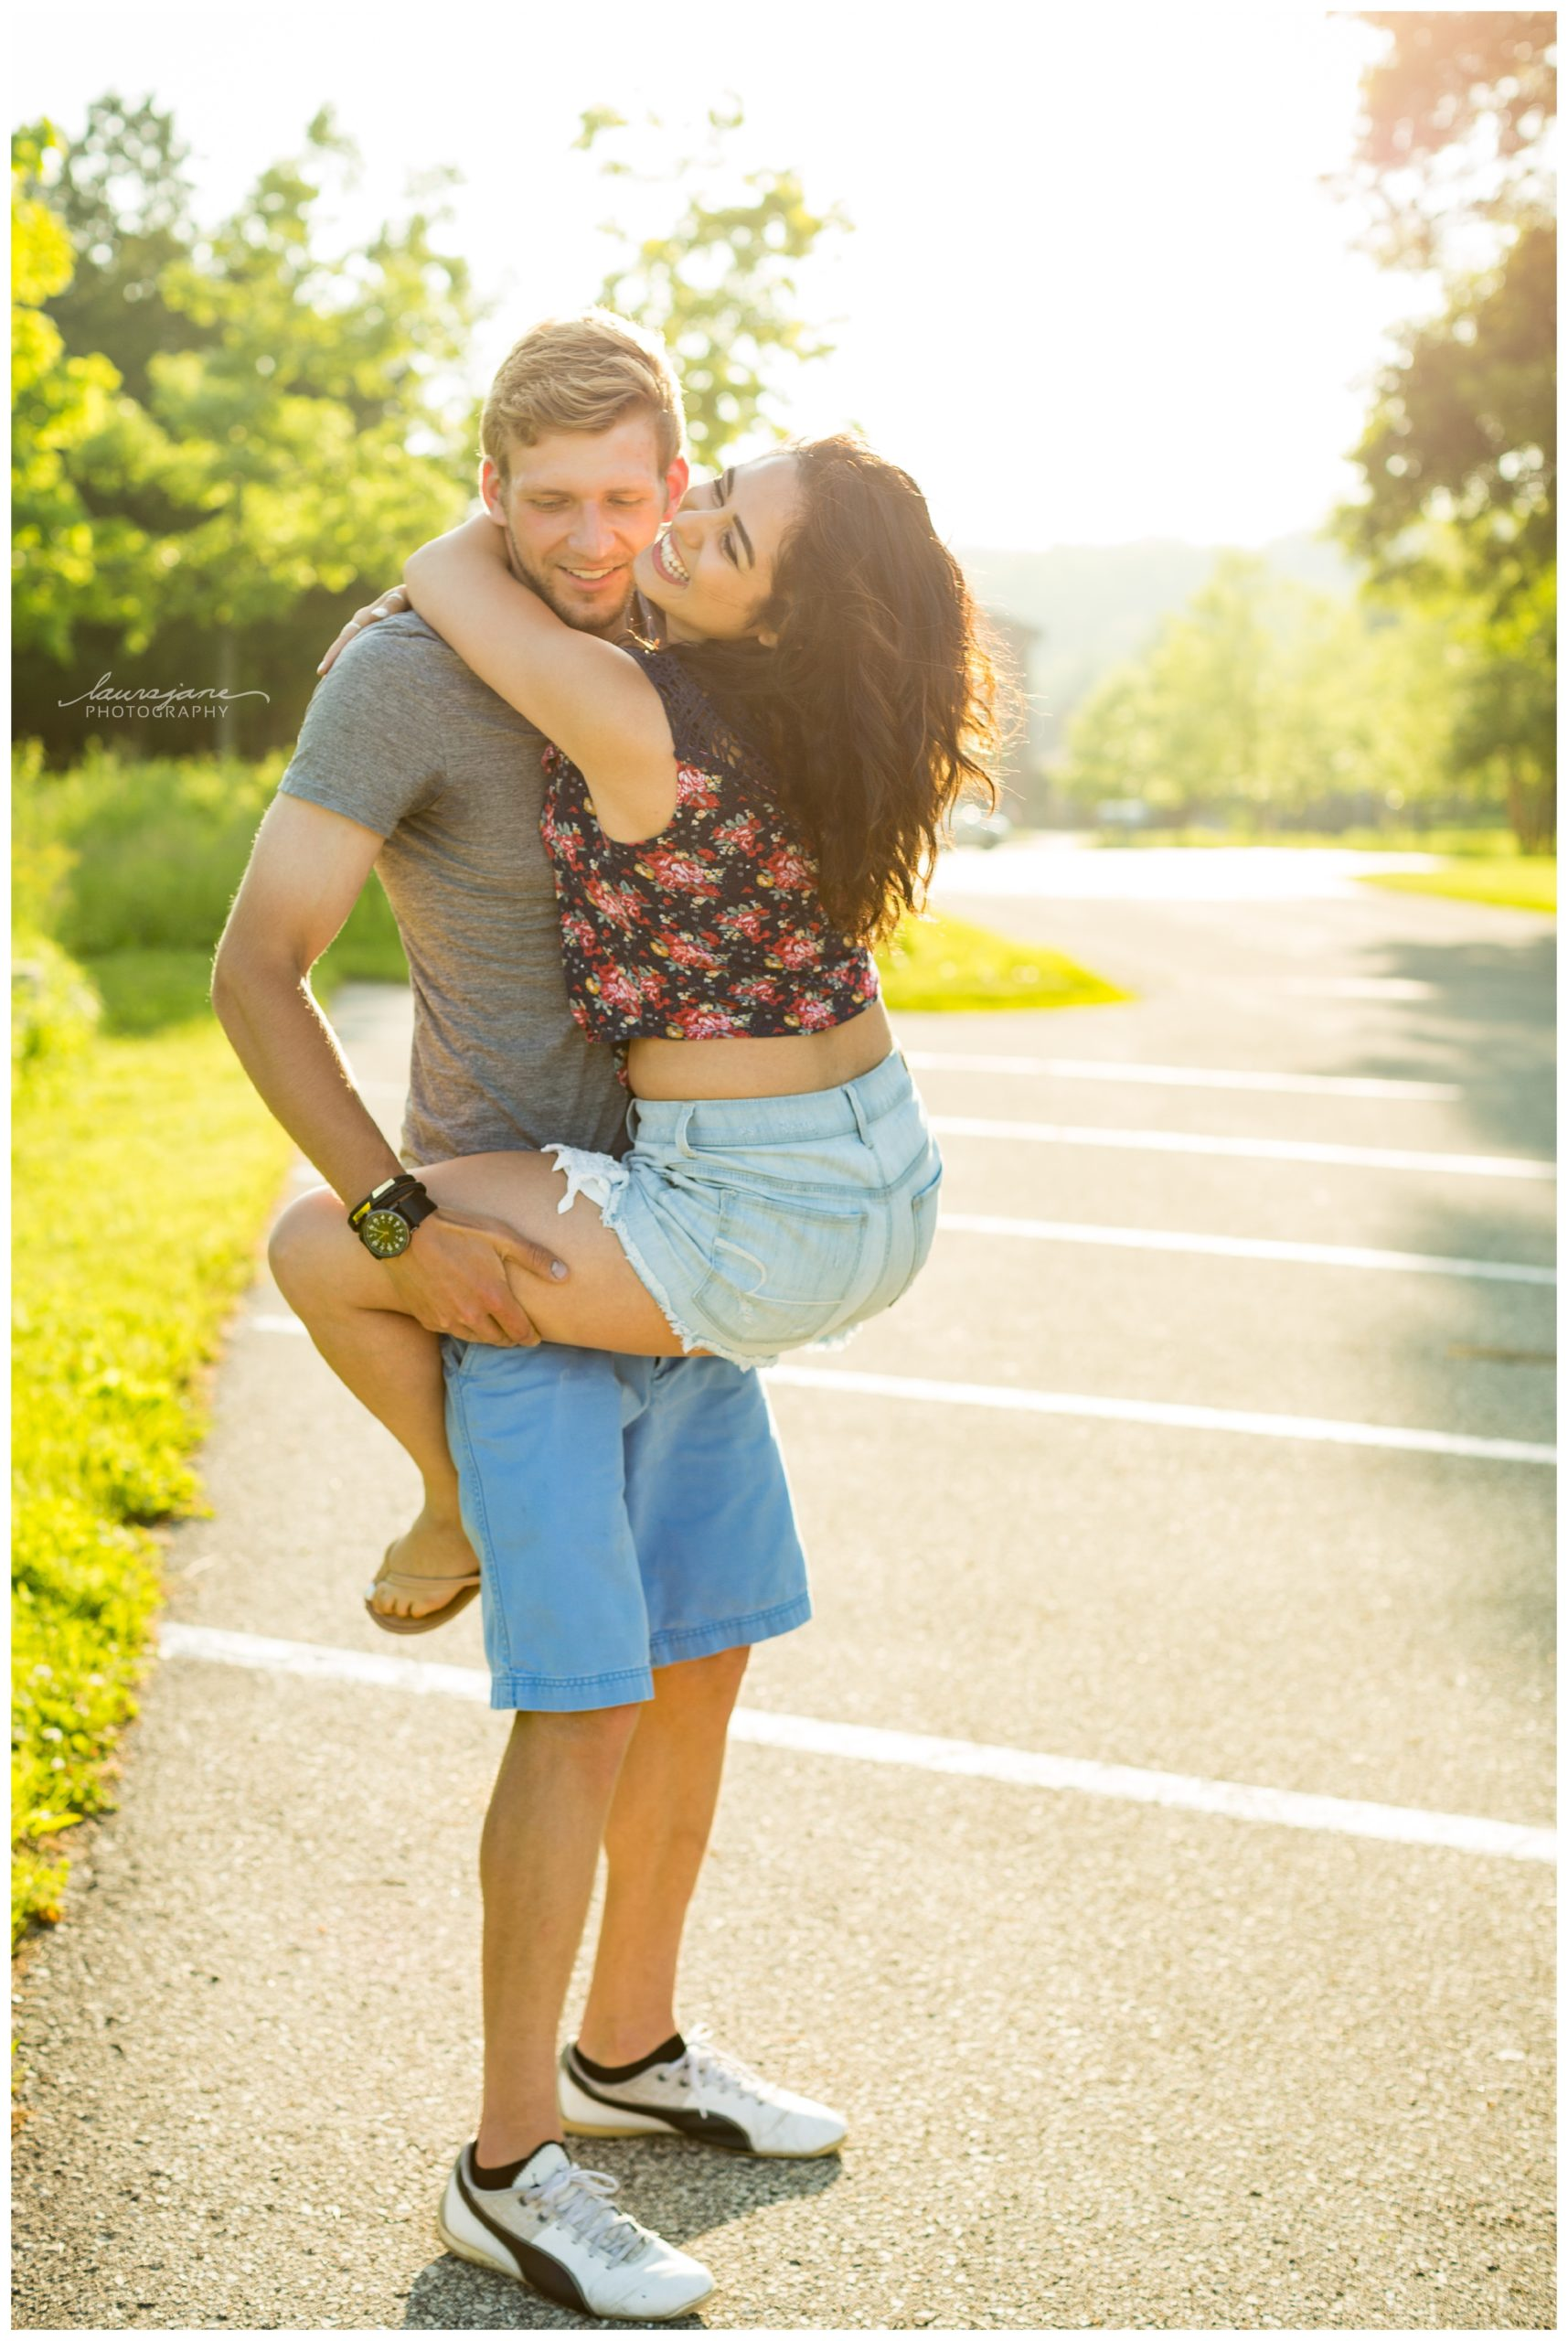 Playful engagement photo of woman hanging on her man